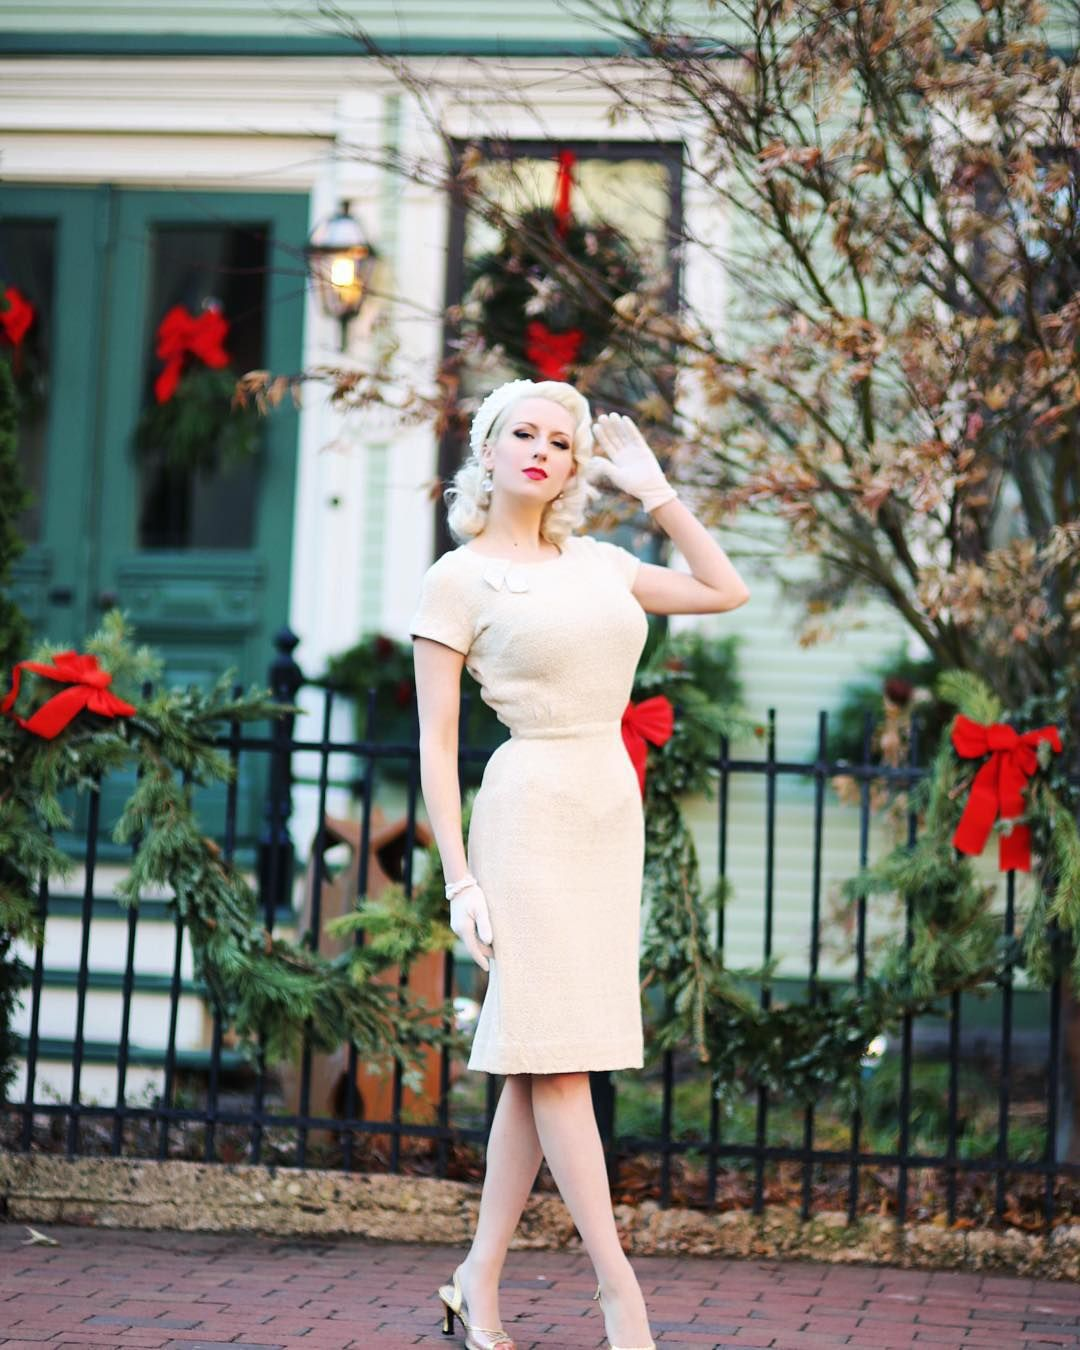 Vintage Glamour • Pinup • Style Blogger ✨ Designer at @AtelierJensen  ChicagoChicBlog@gmail.com  My latest style post: